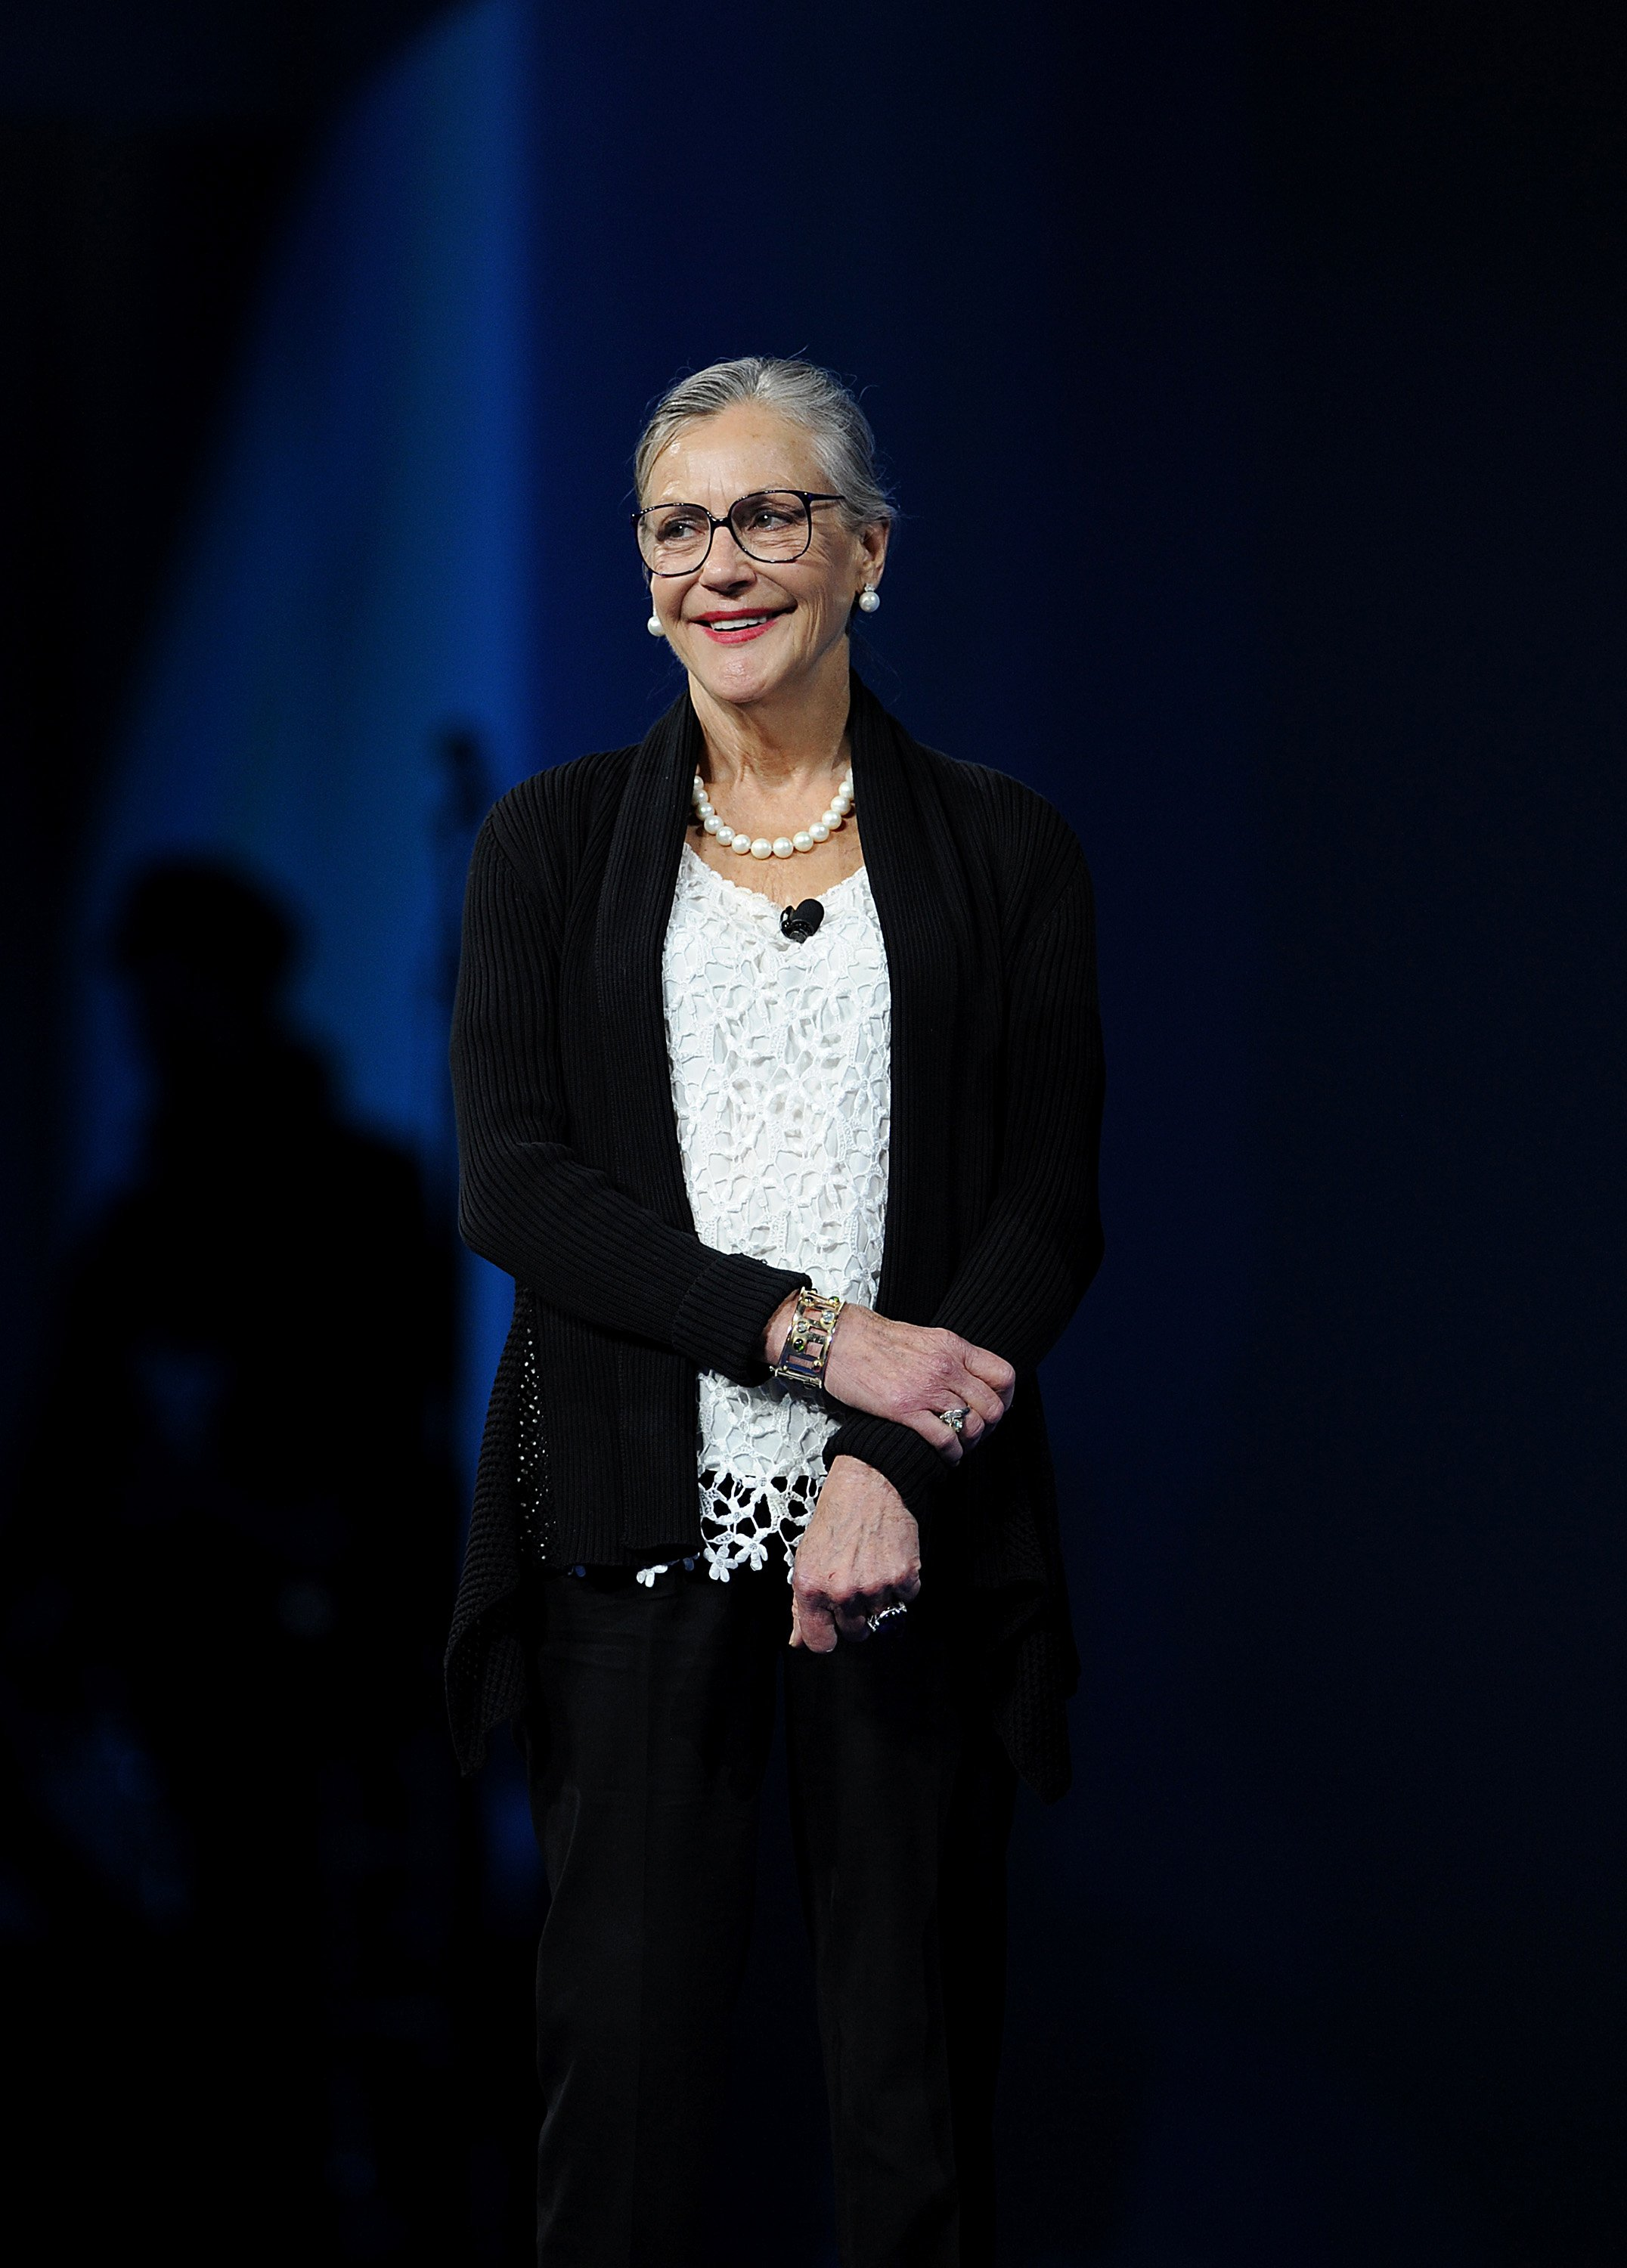 Alice Walton presenting the Entrepreneur Award on Friday, June 7, 2013. | Photo: Getty Images